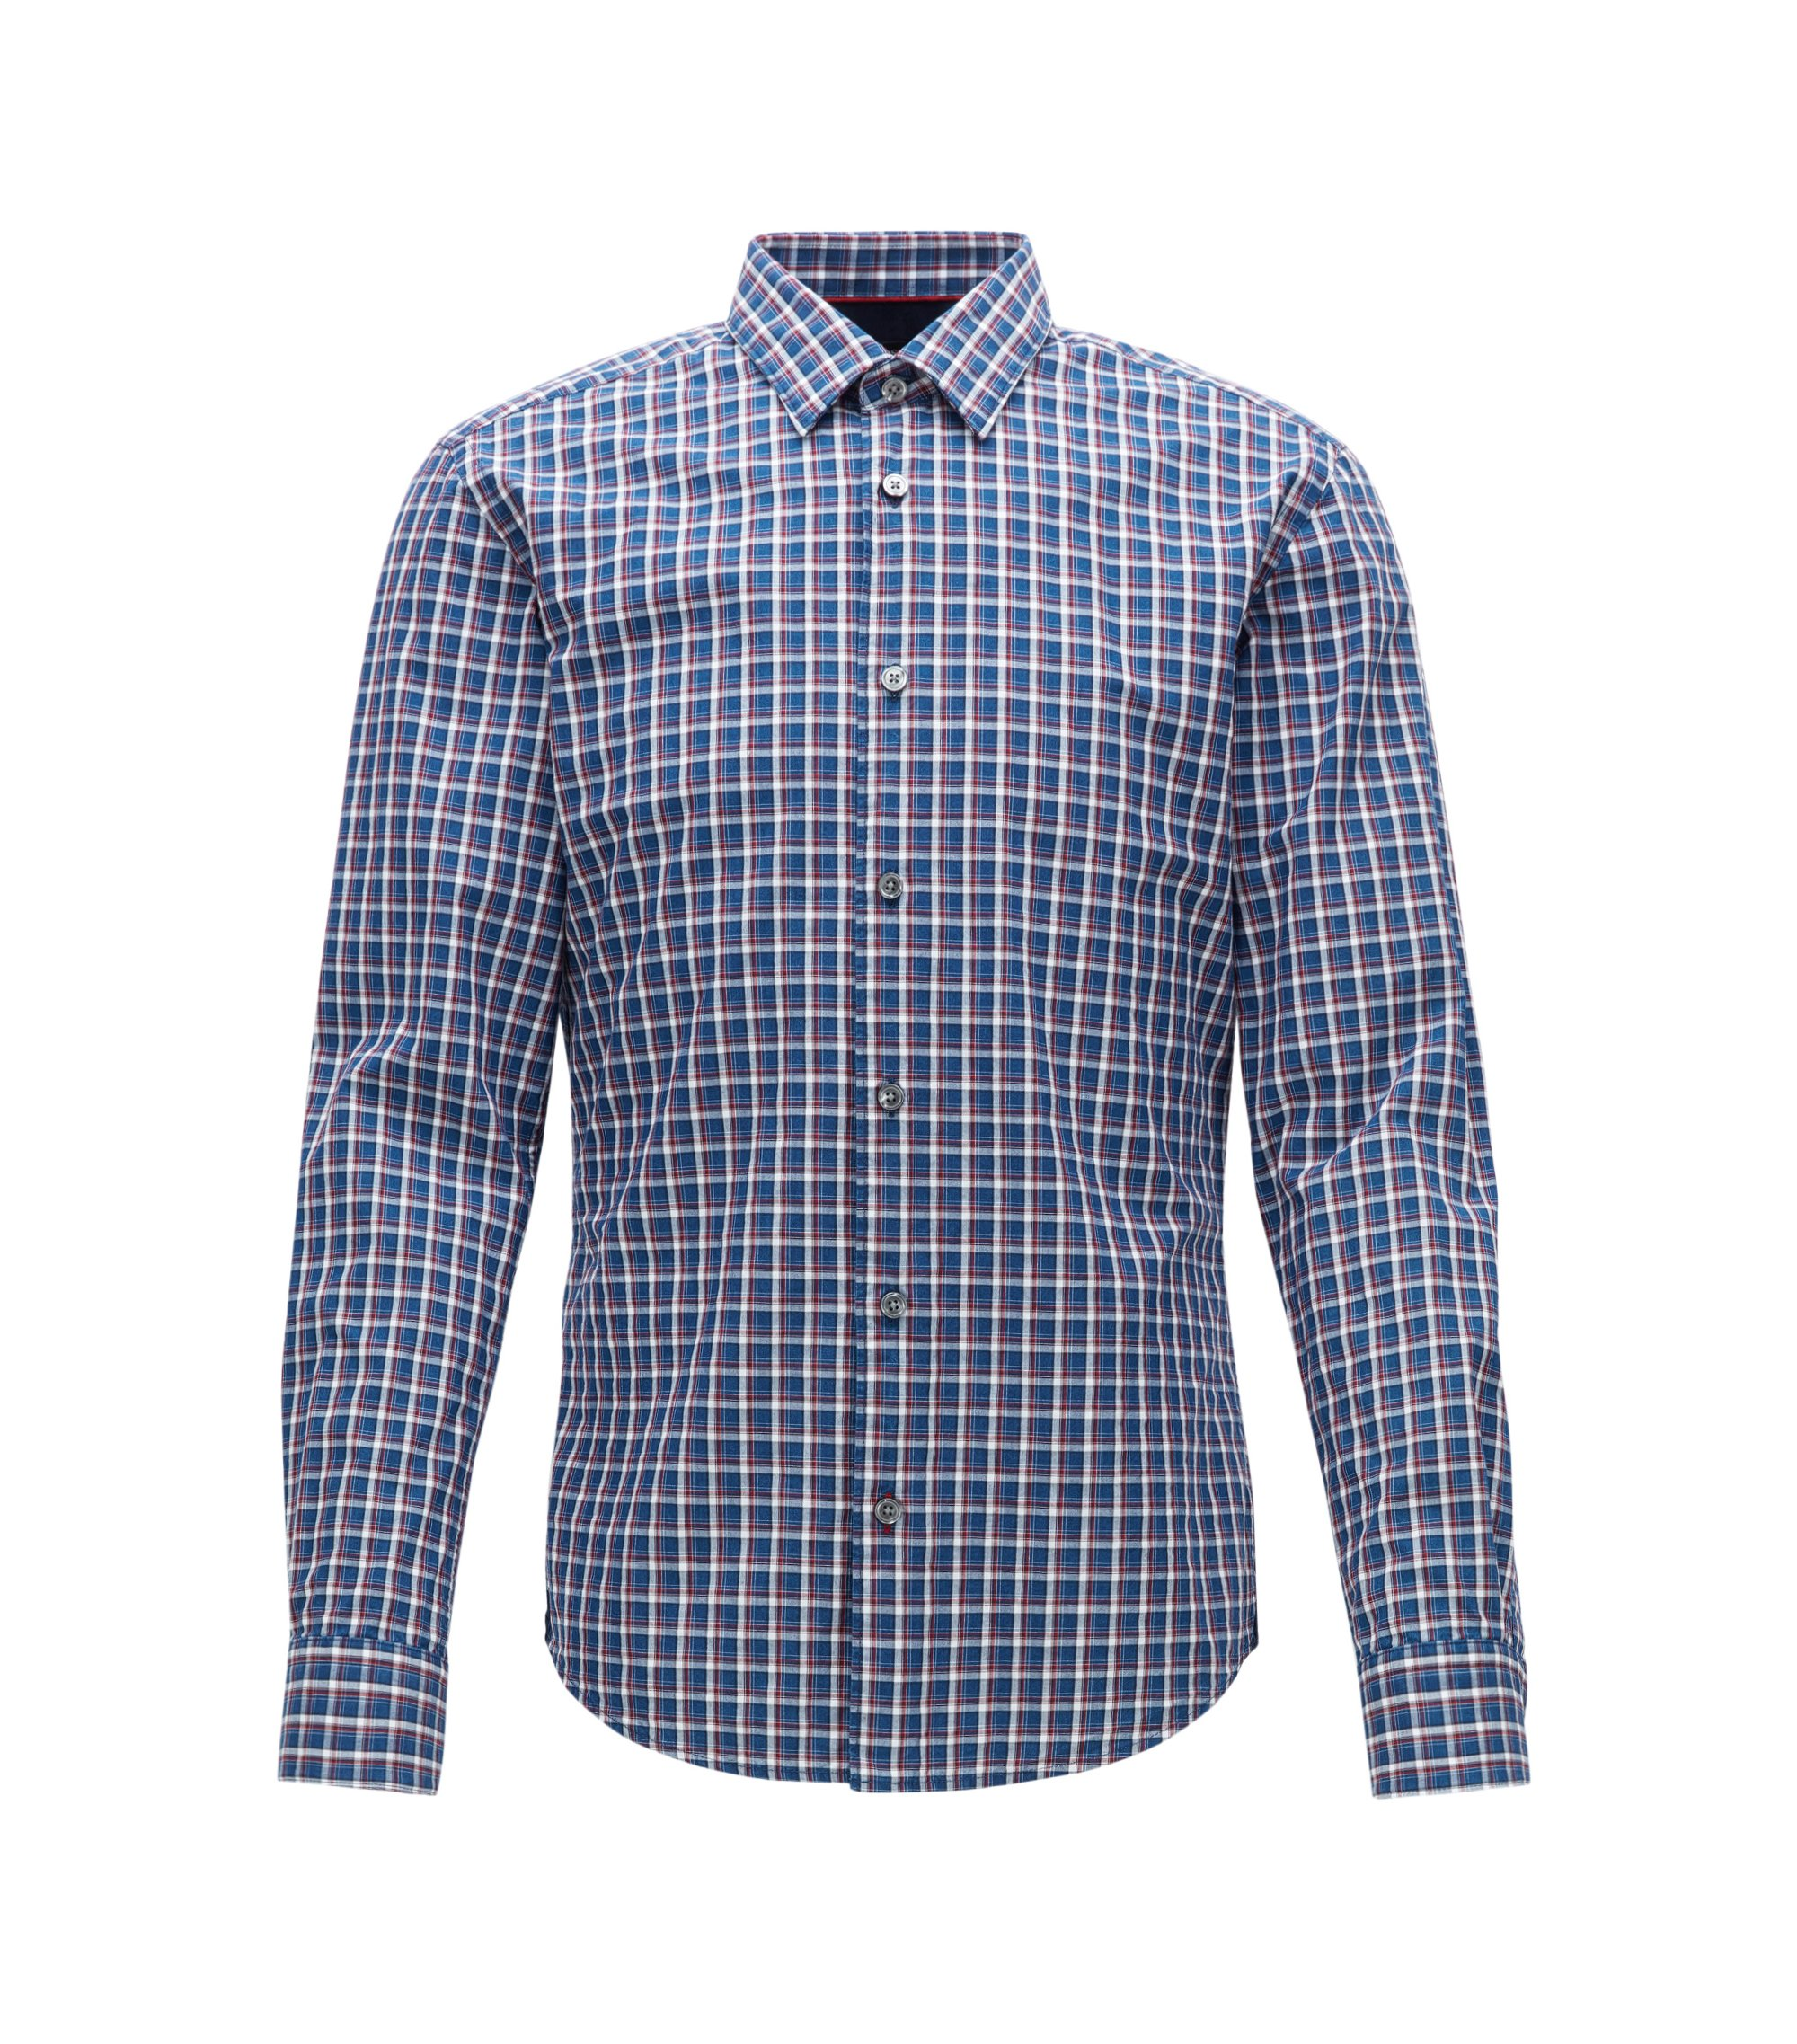 Chemise Slim Fit en denim de coton à carreaux, Fantaisie